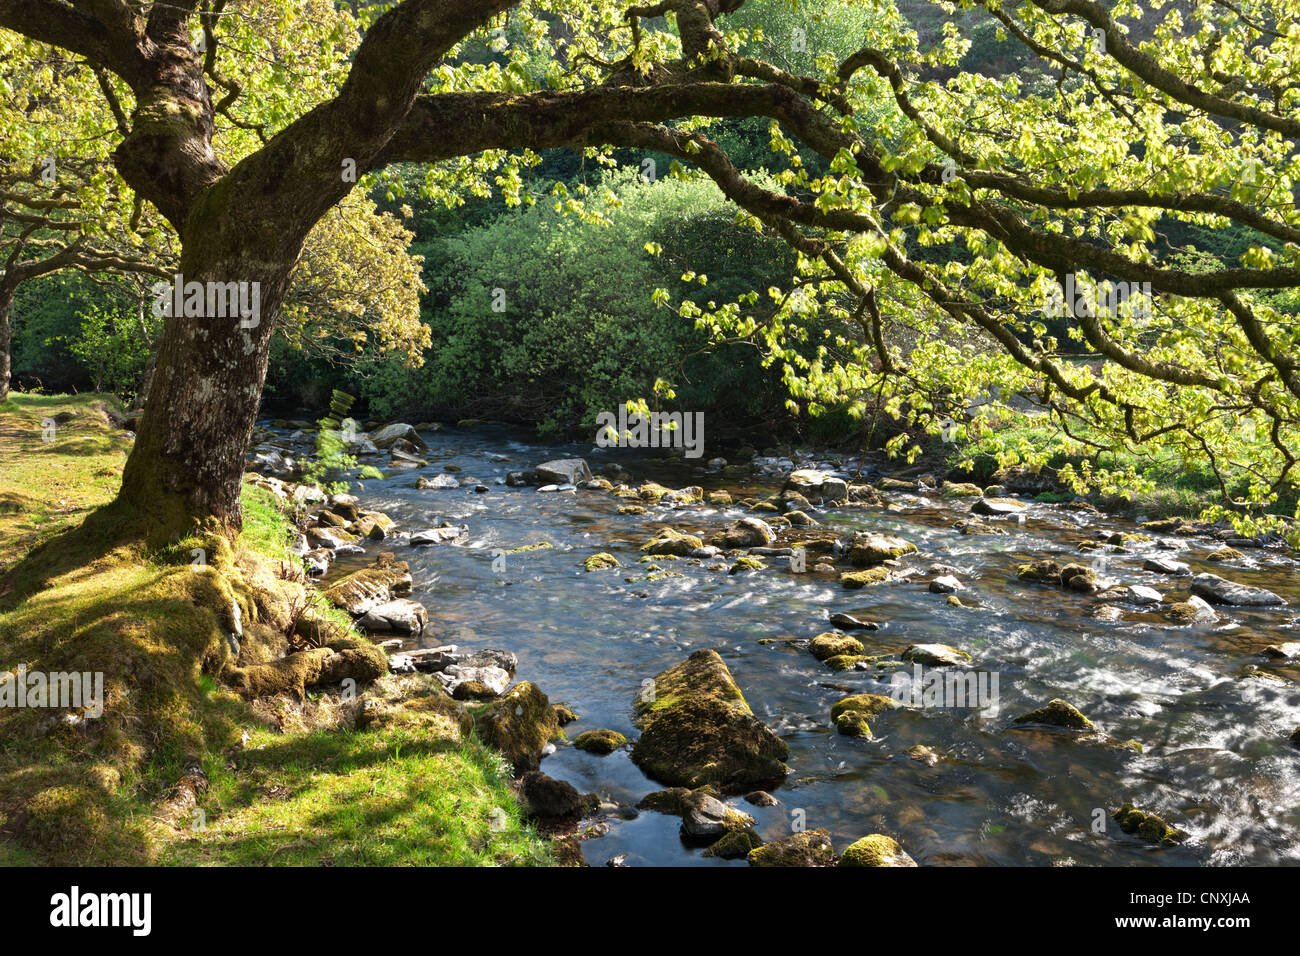 Spring foliage on the banks of Badgworthy Water in the Doone Valley, Exmoor, Somerset, England. Spring (May) 2011. - Stock Image